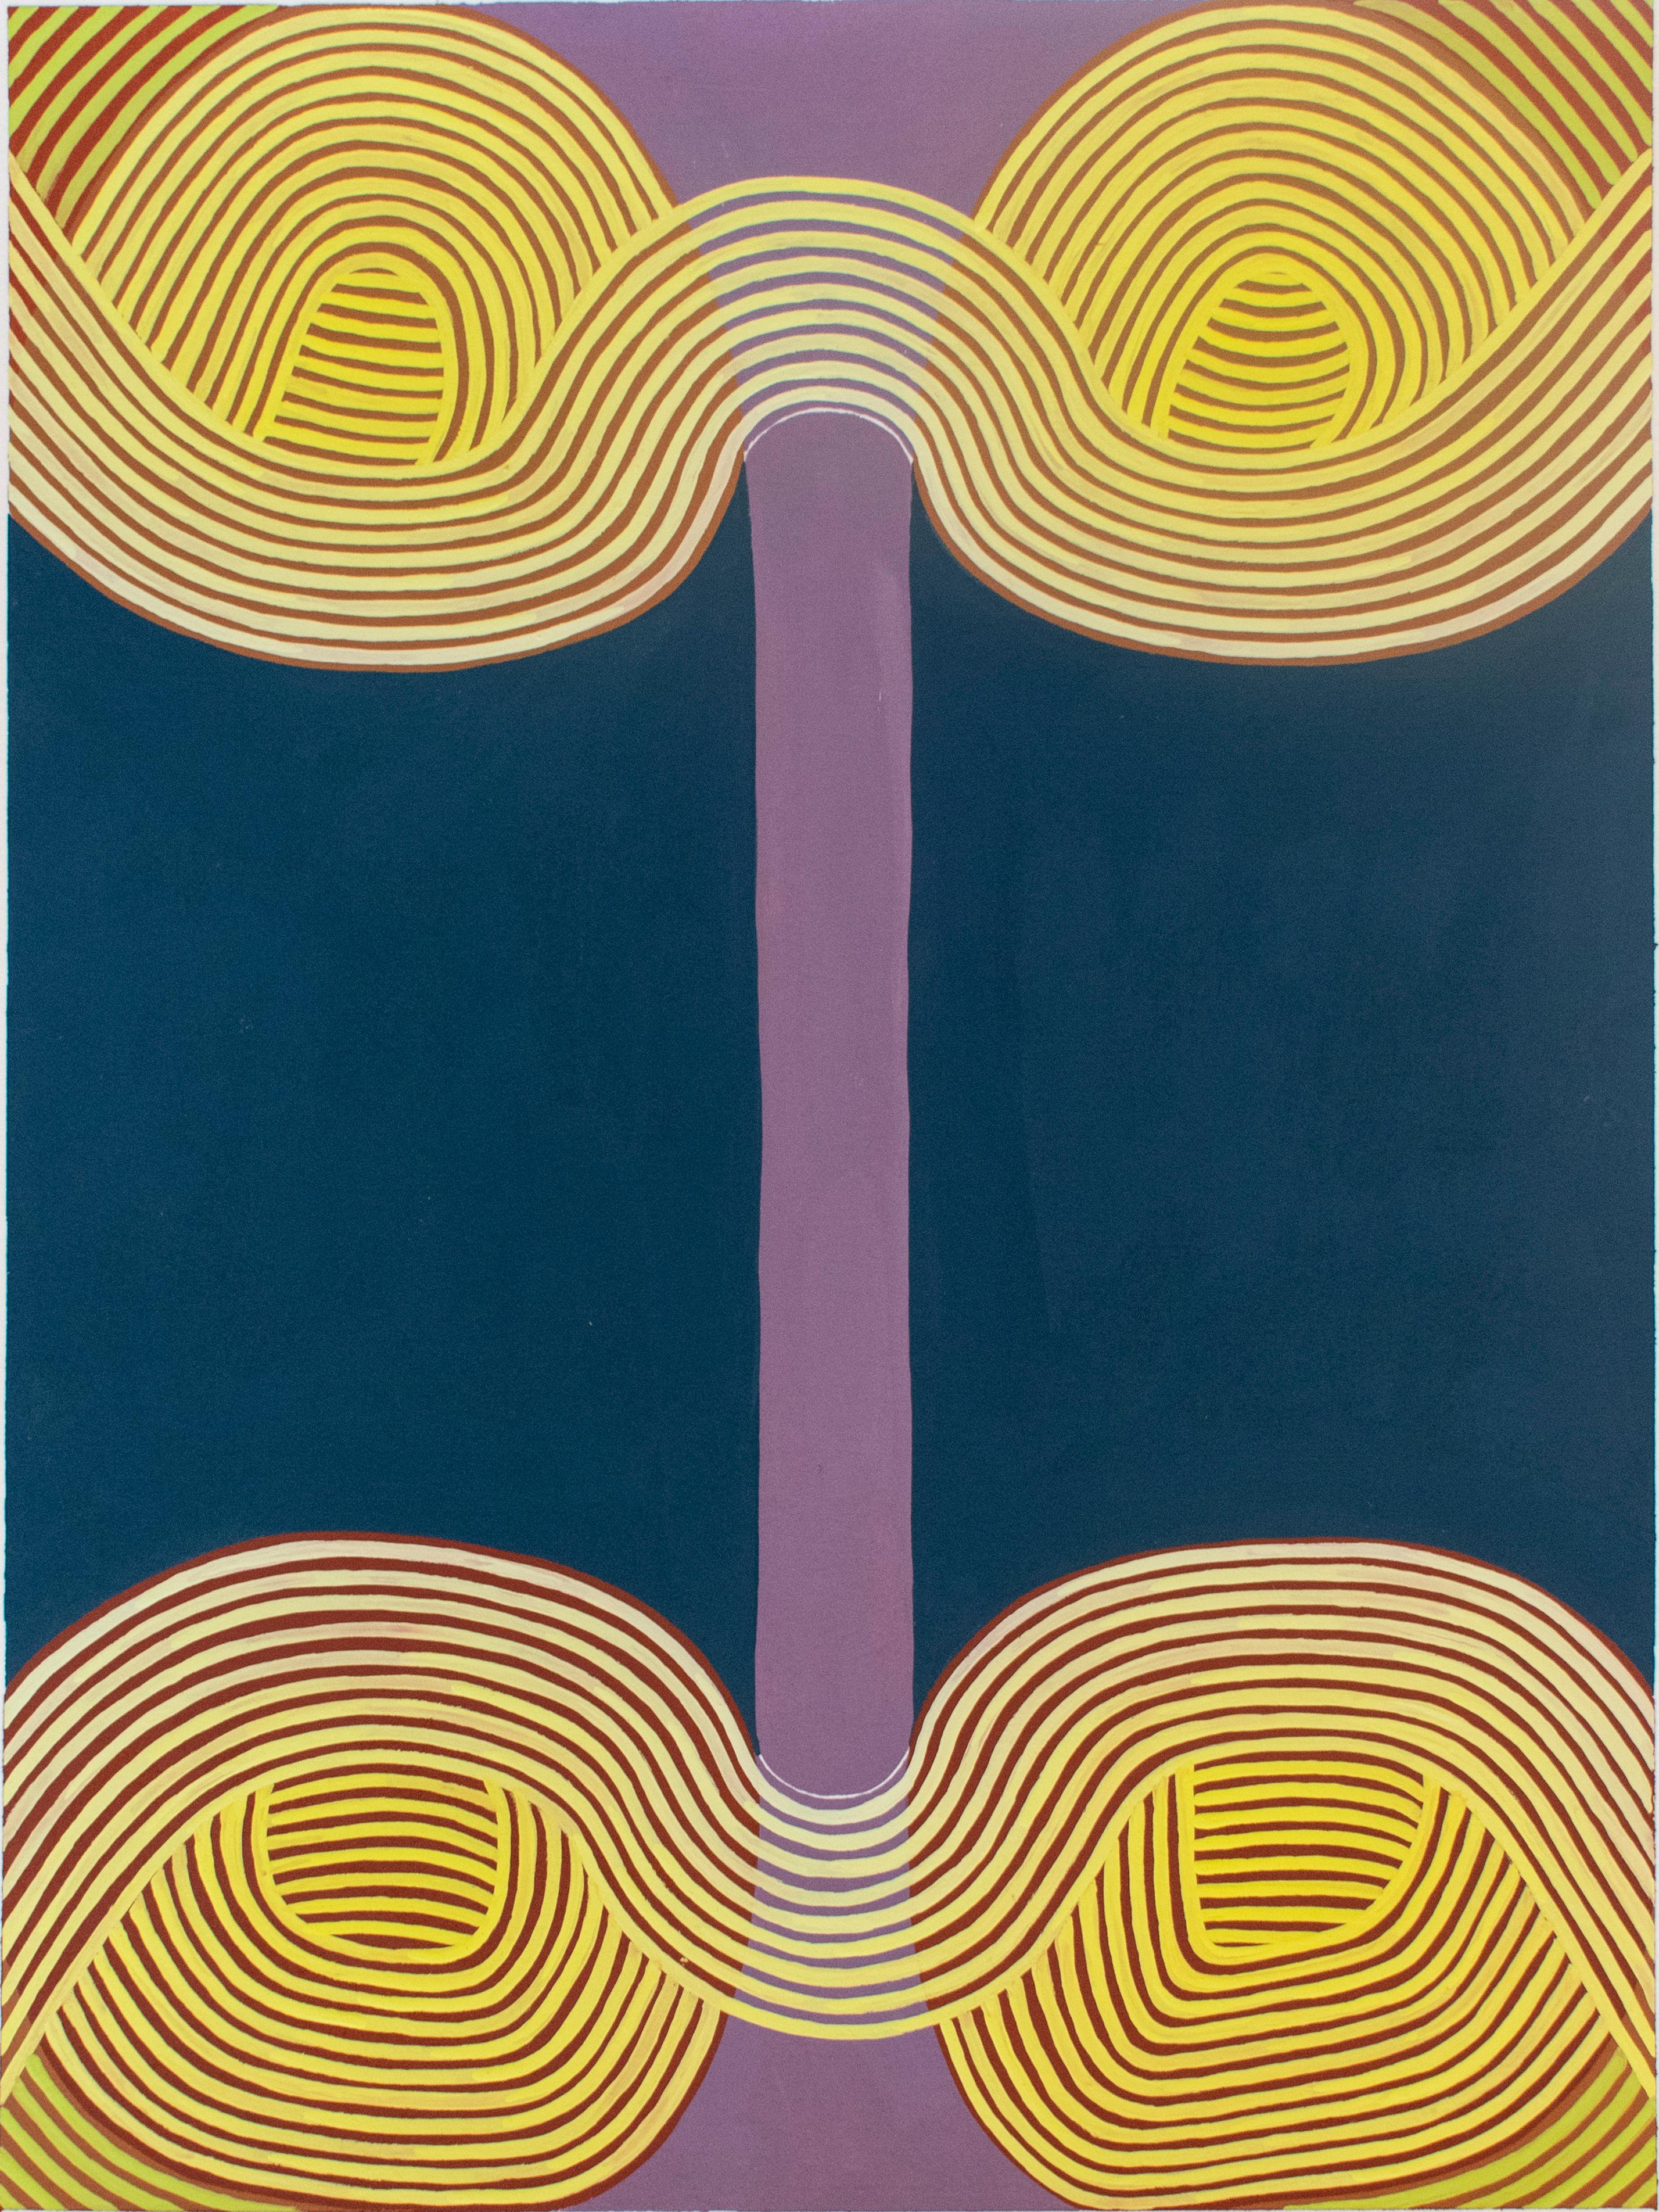 Untitled 2 (Graphic Abstract Painting on Paper in Purple, Yellow & Blue)